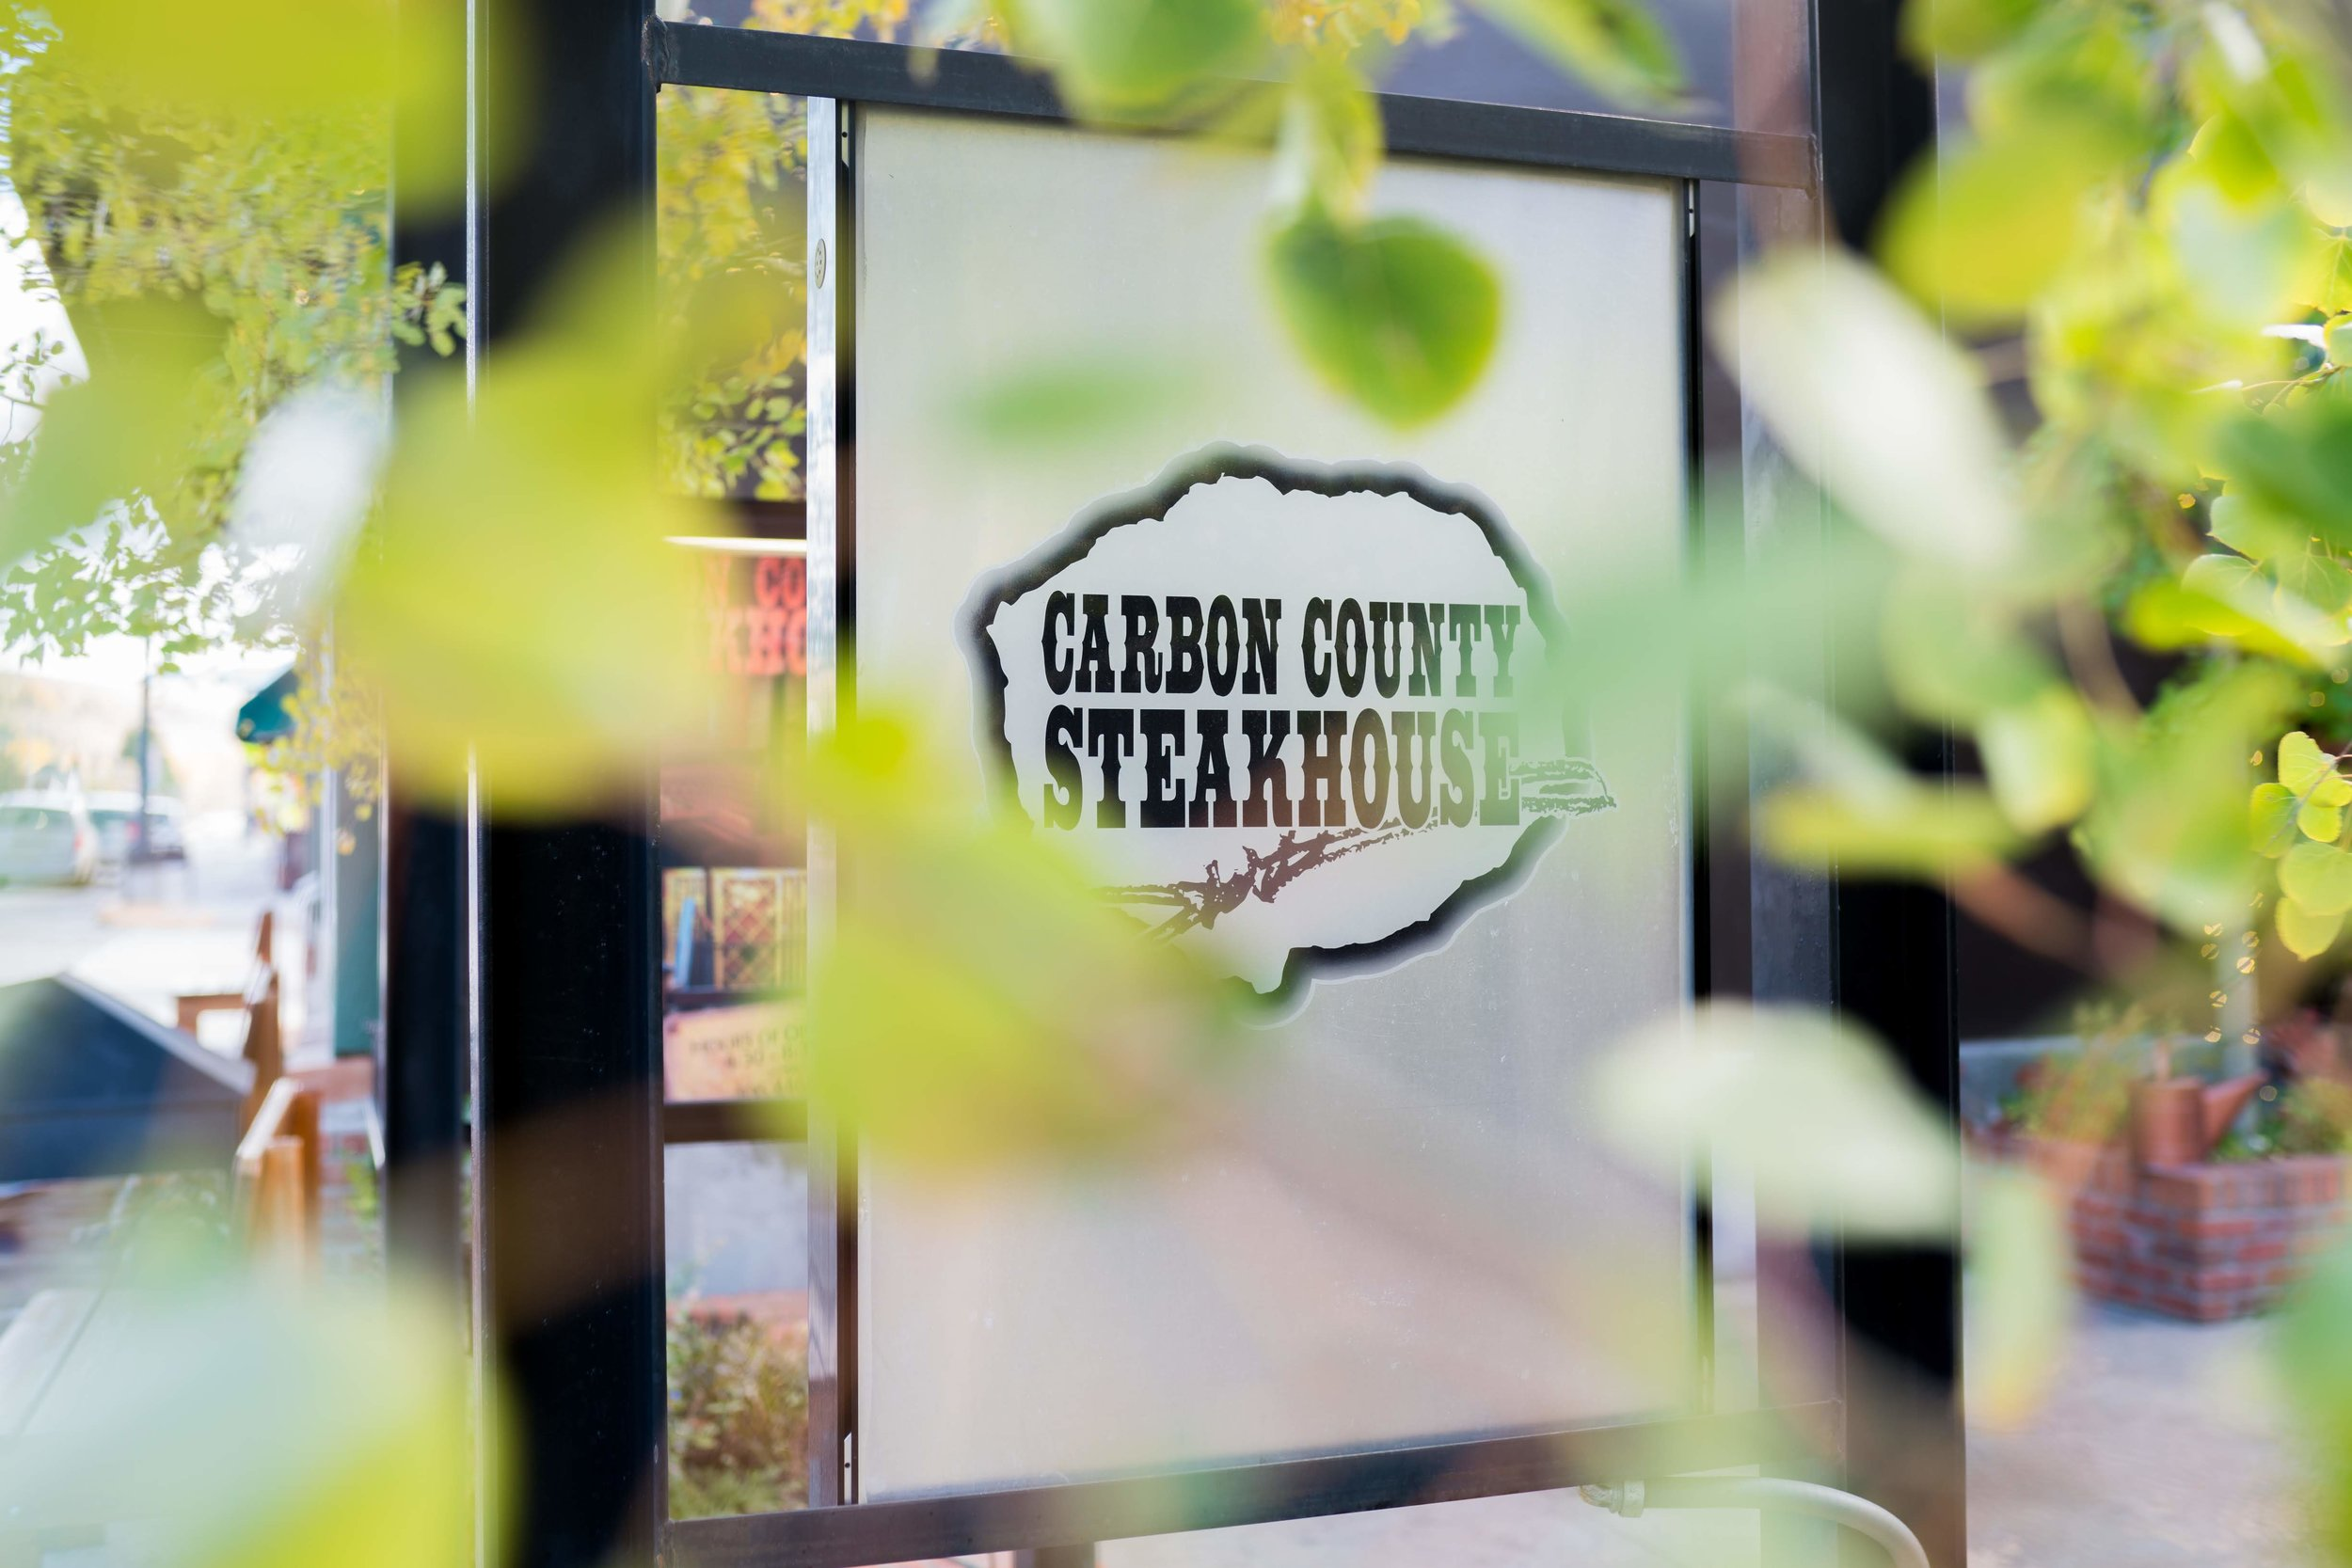 Carbon County Steak House - Open Nightly 4:30-8:30 p.m.406-446-4025